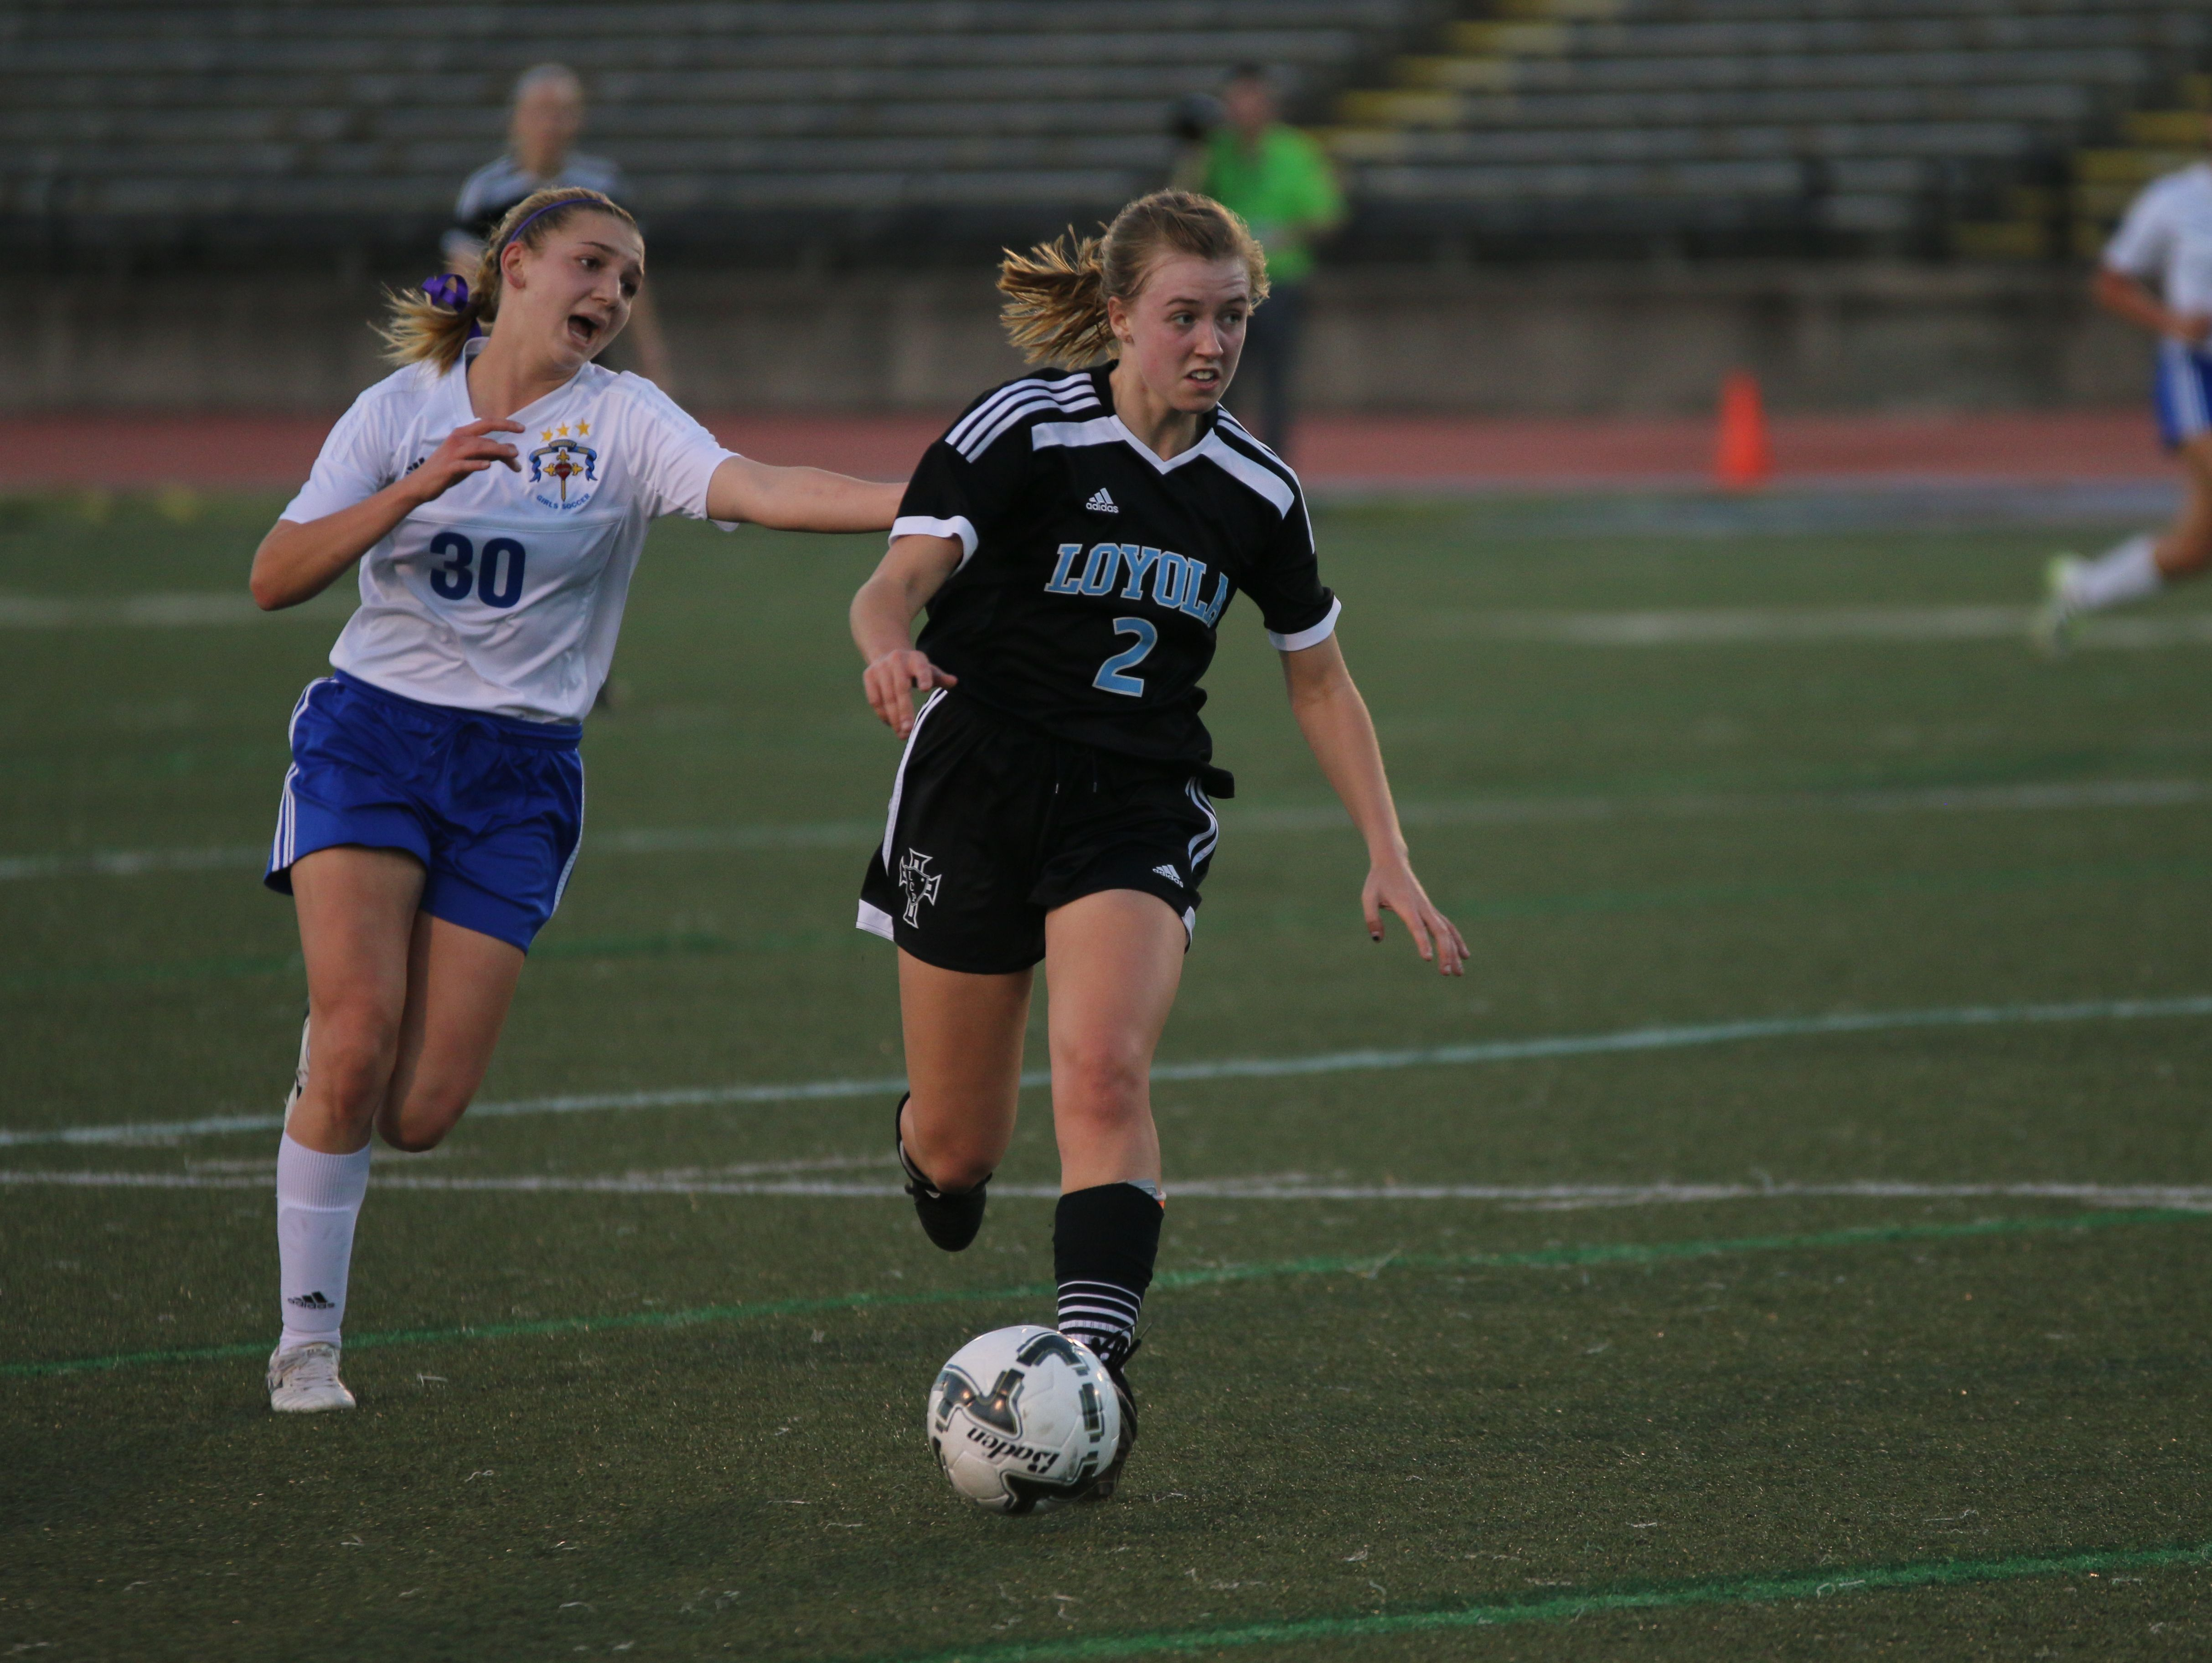 Loyola's Elizabeth Bryan attempts to outrun a defender in Wednesday's Division III state championship girls soccer game vs. Vandebilt Catholic at Tad Gormley Stadium in New Orleans.